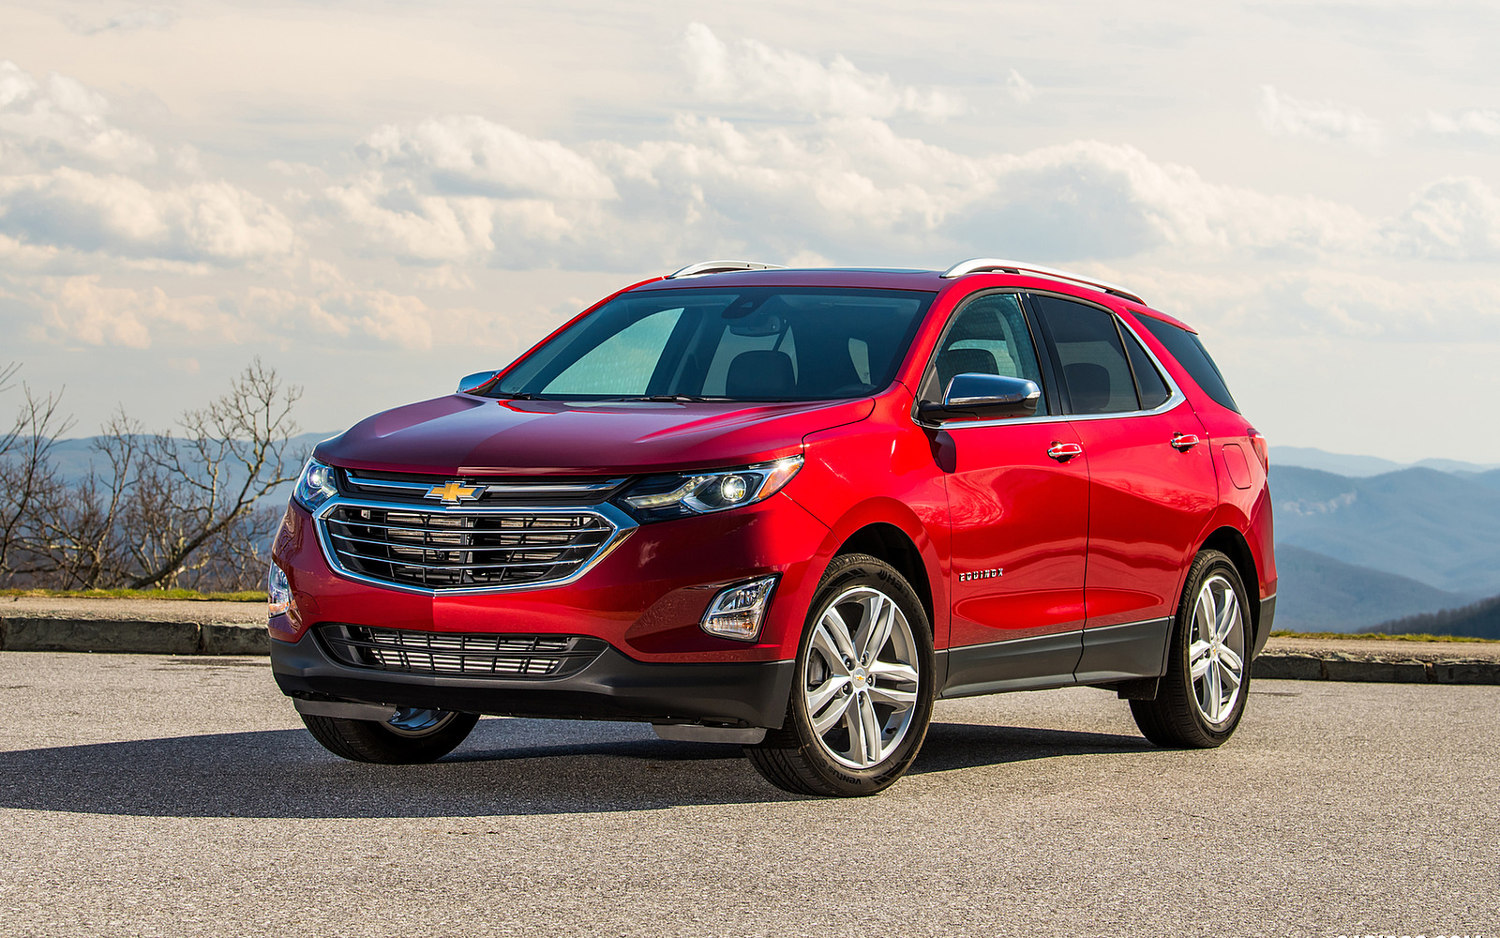 Comparison Chevrolet Equinox Lt 2018 Vs Vauxhall Grandland X